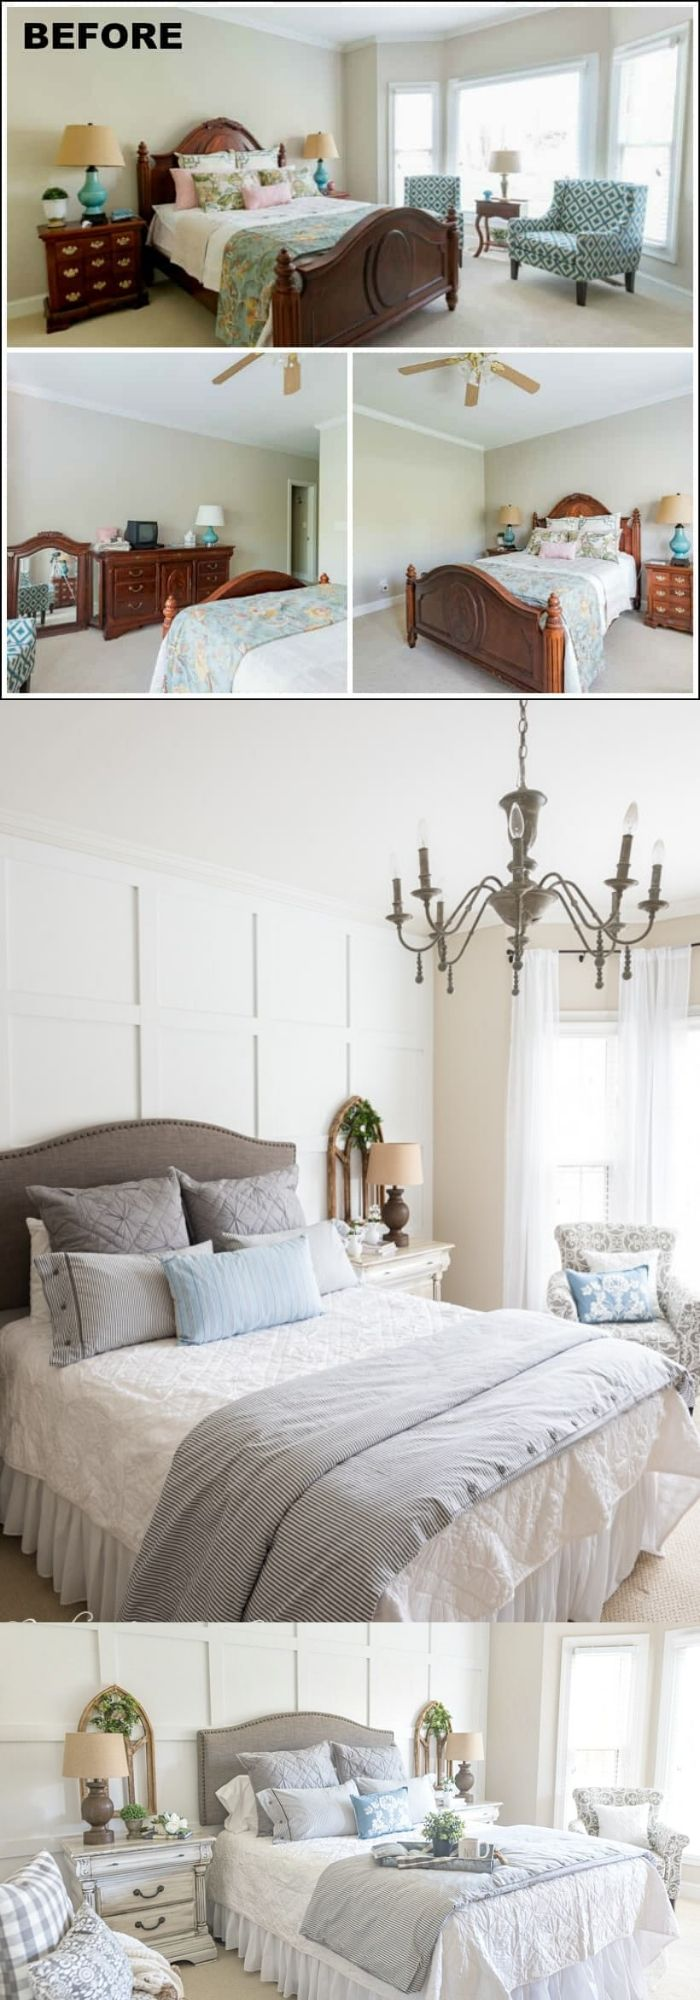 21+ Best Farmhouse Guest Bedroom Decor Ideas & Designs In 2020